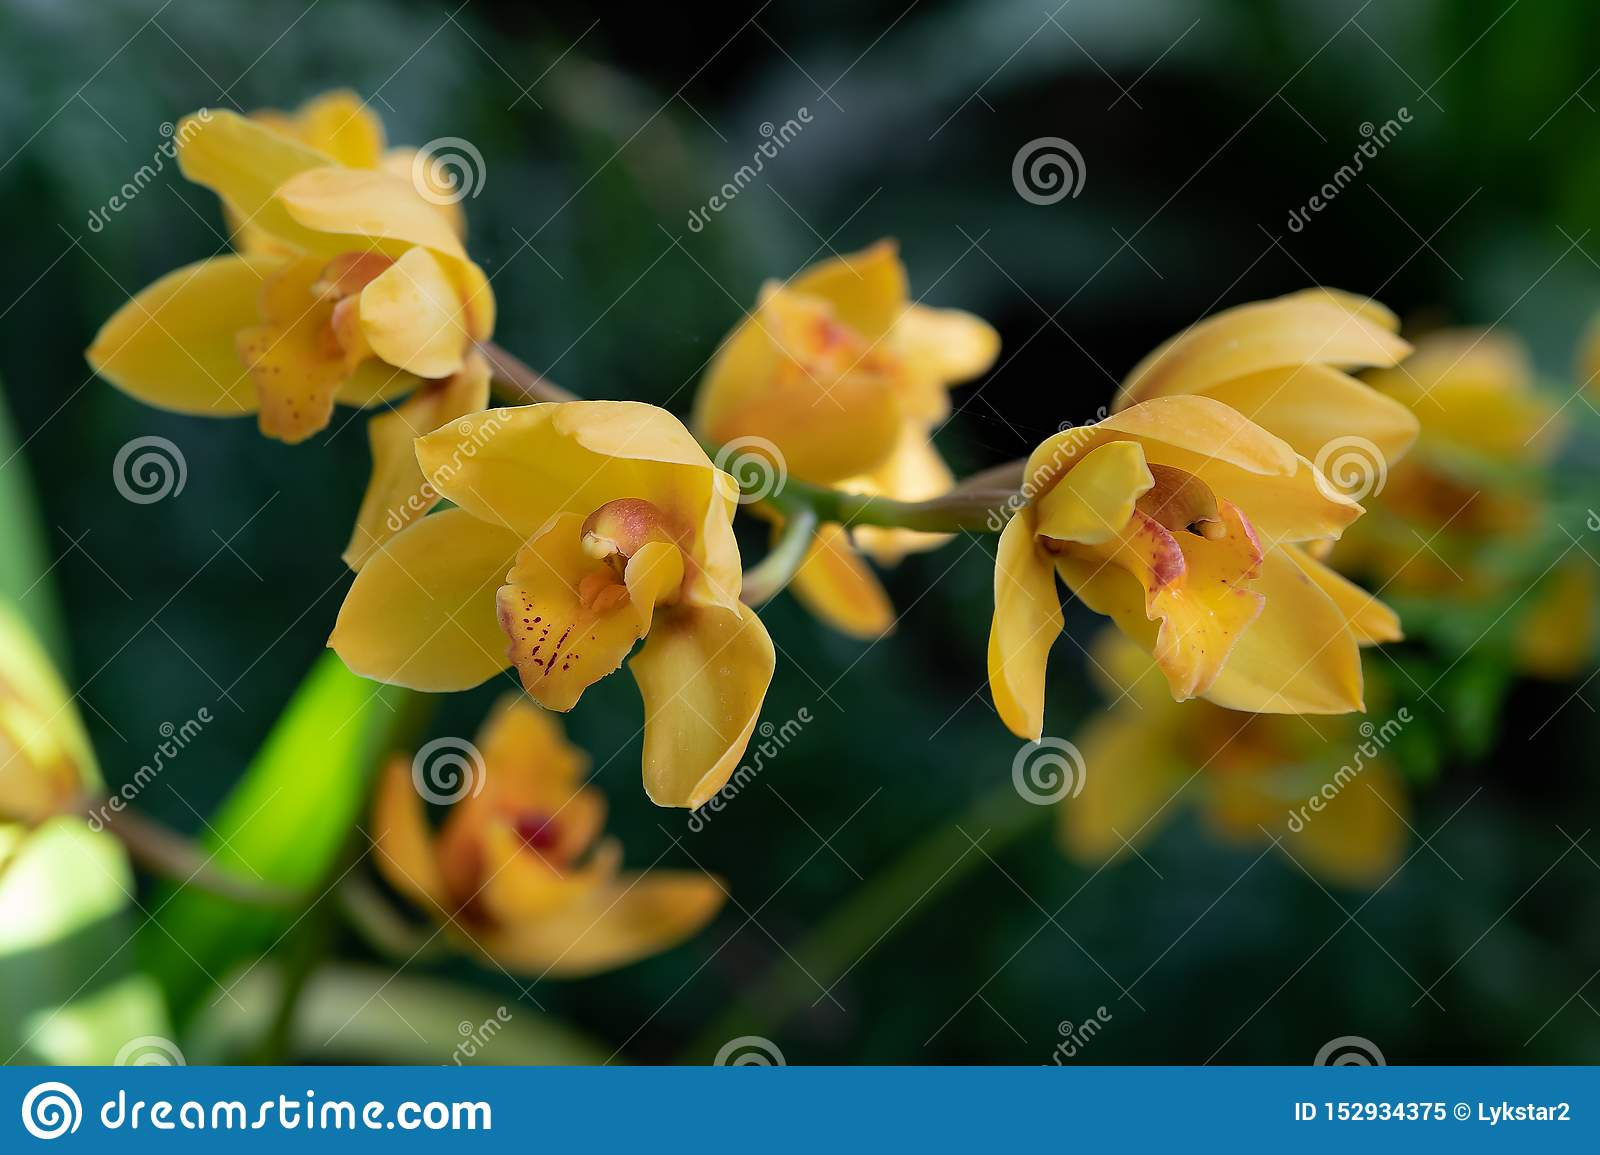 Orchid flower in garden at winter or spring day for postcard beauty and agriculture idea concept design. Phalaenopsis orchid